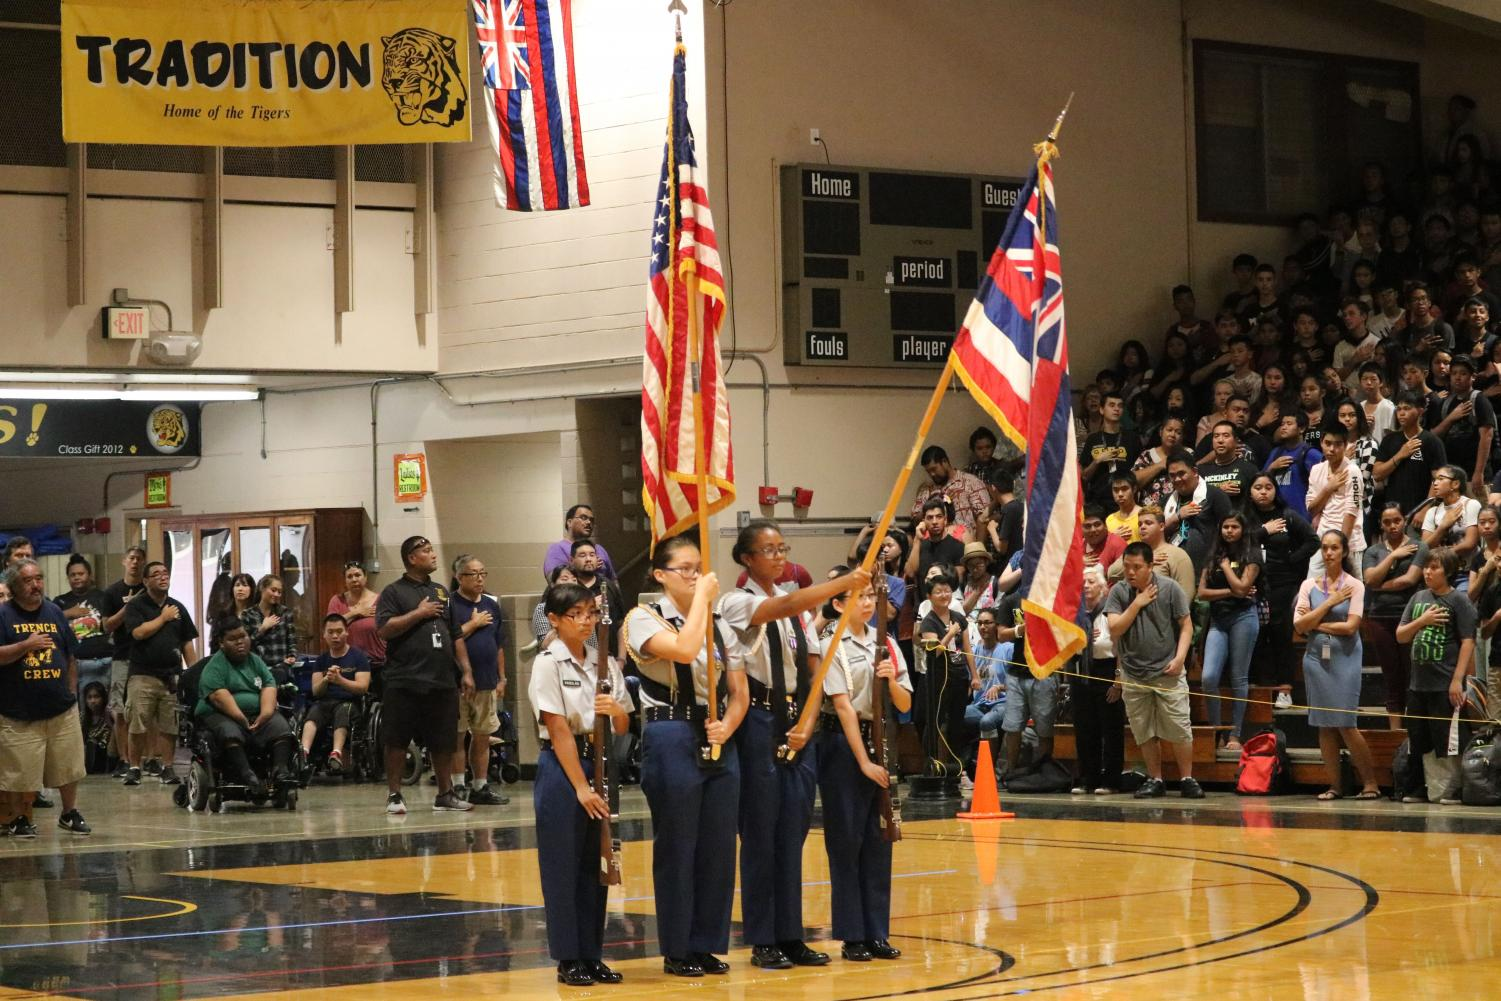 The+JROTC+Color+Guard+started+off+the+assembly+with+The+Star+Spangled+Banner+and+Hawaii+Ponoi%2C+accompanied+by+the+McKinley+Band.%0Aphoto+by+Sabrina+Williams